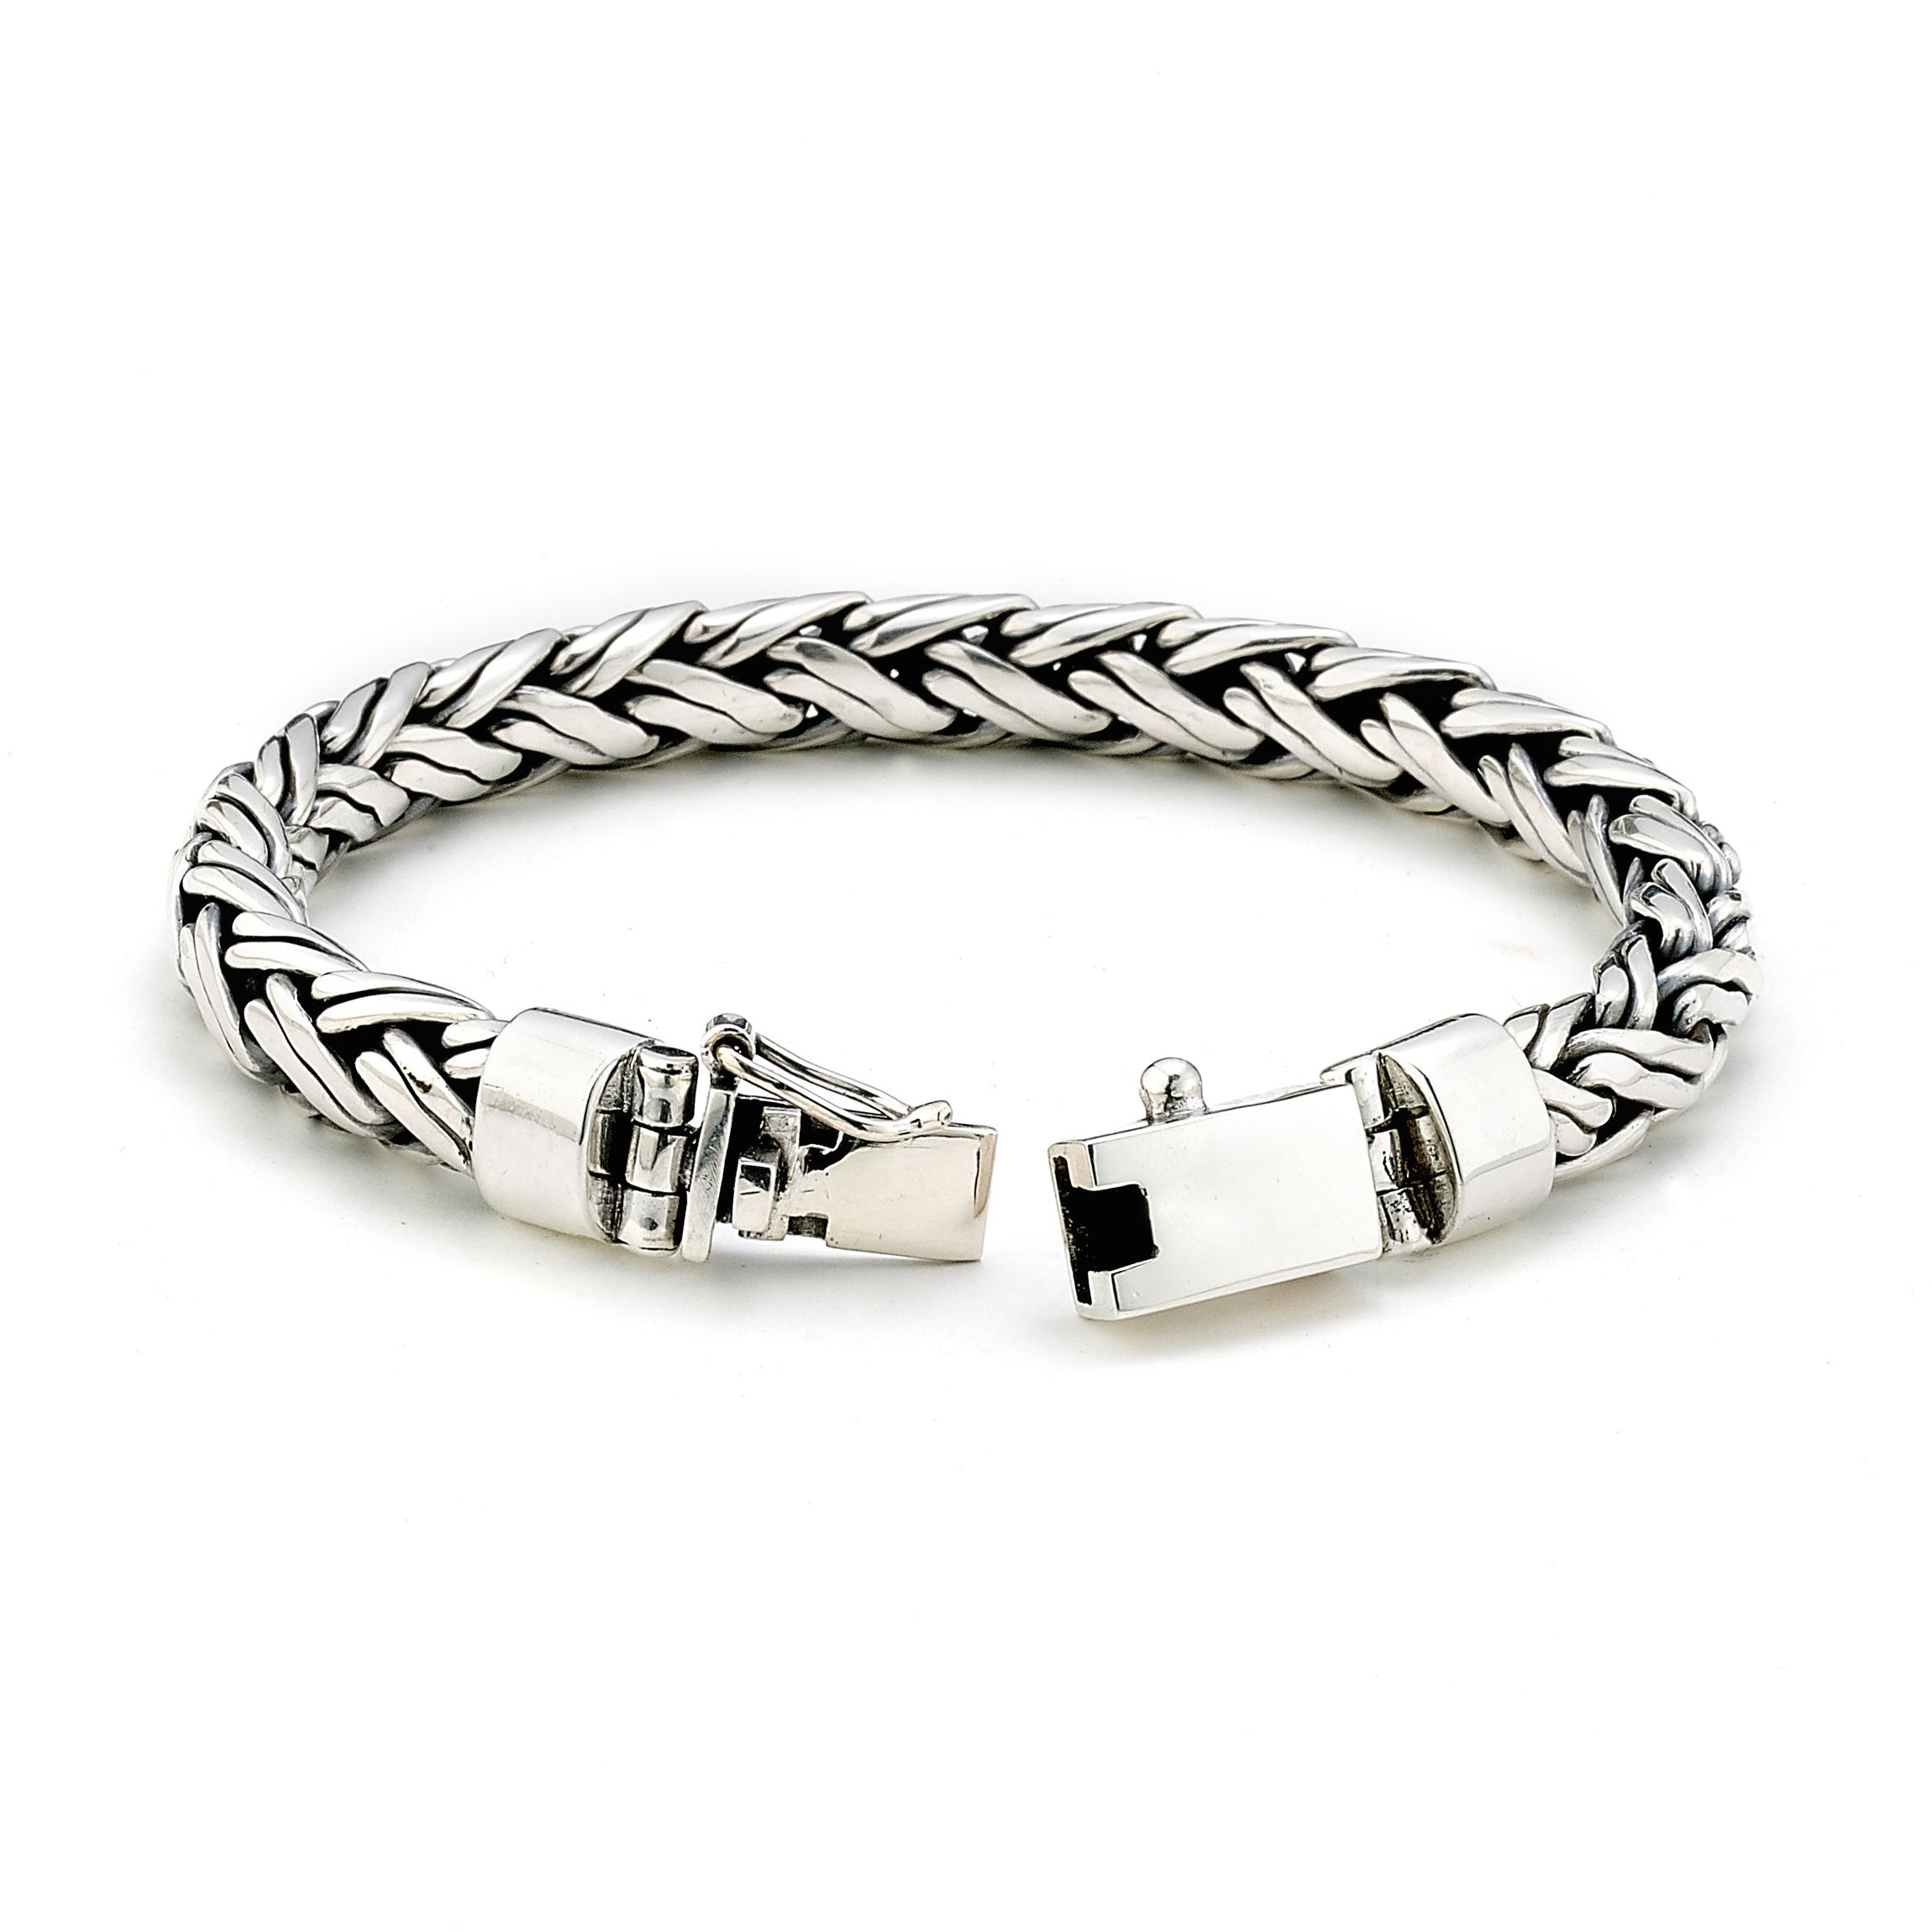 Wide Braided Bracelet, Sterling Silver, 8.5 Inches